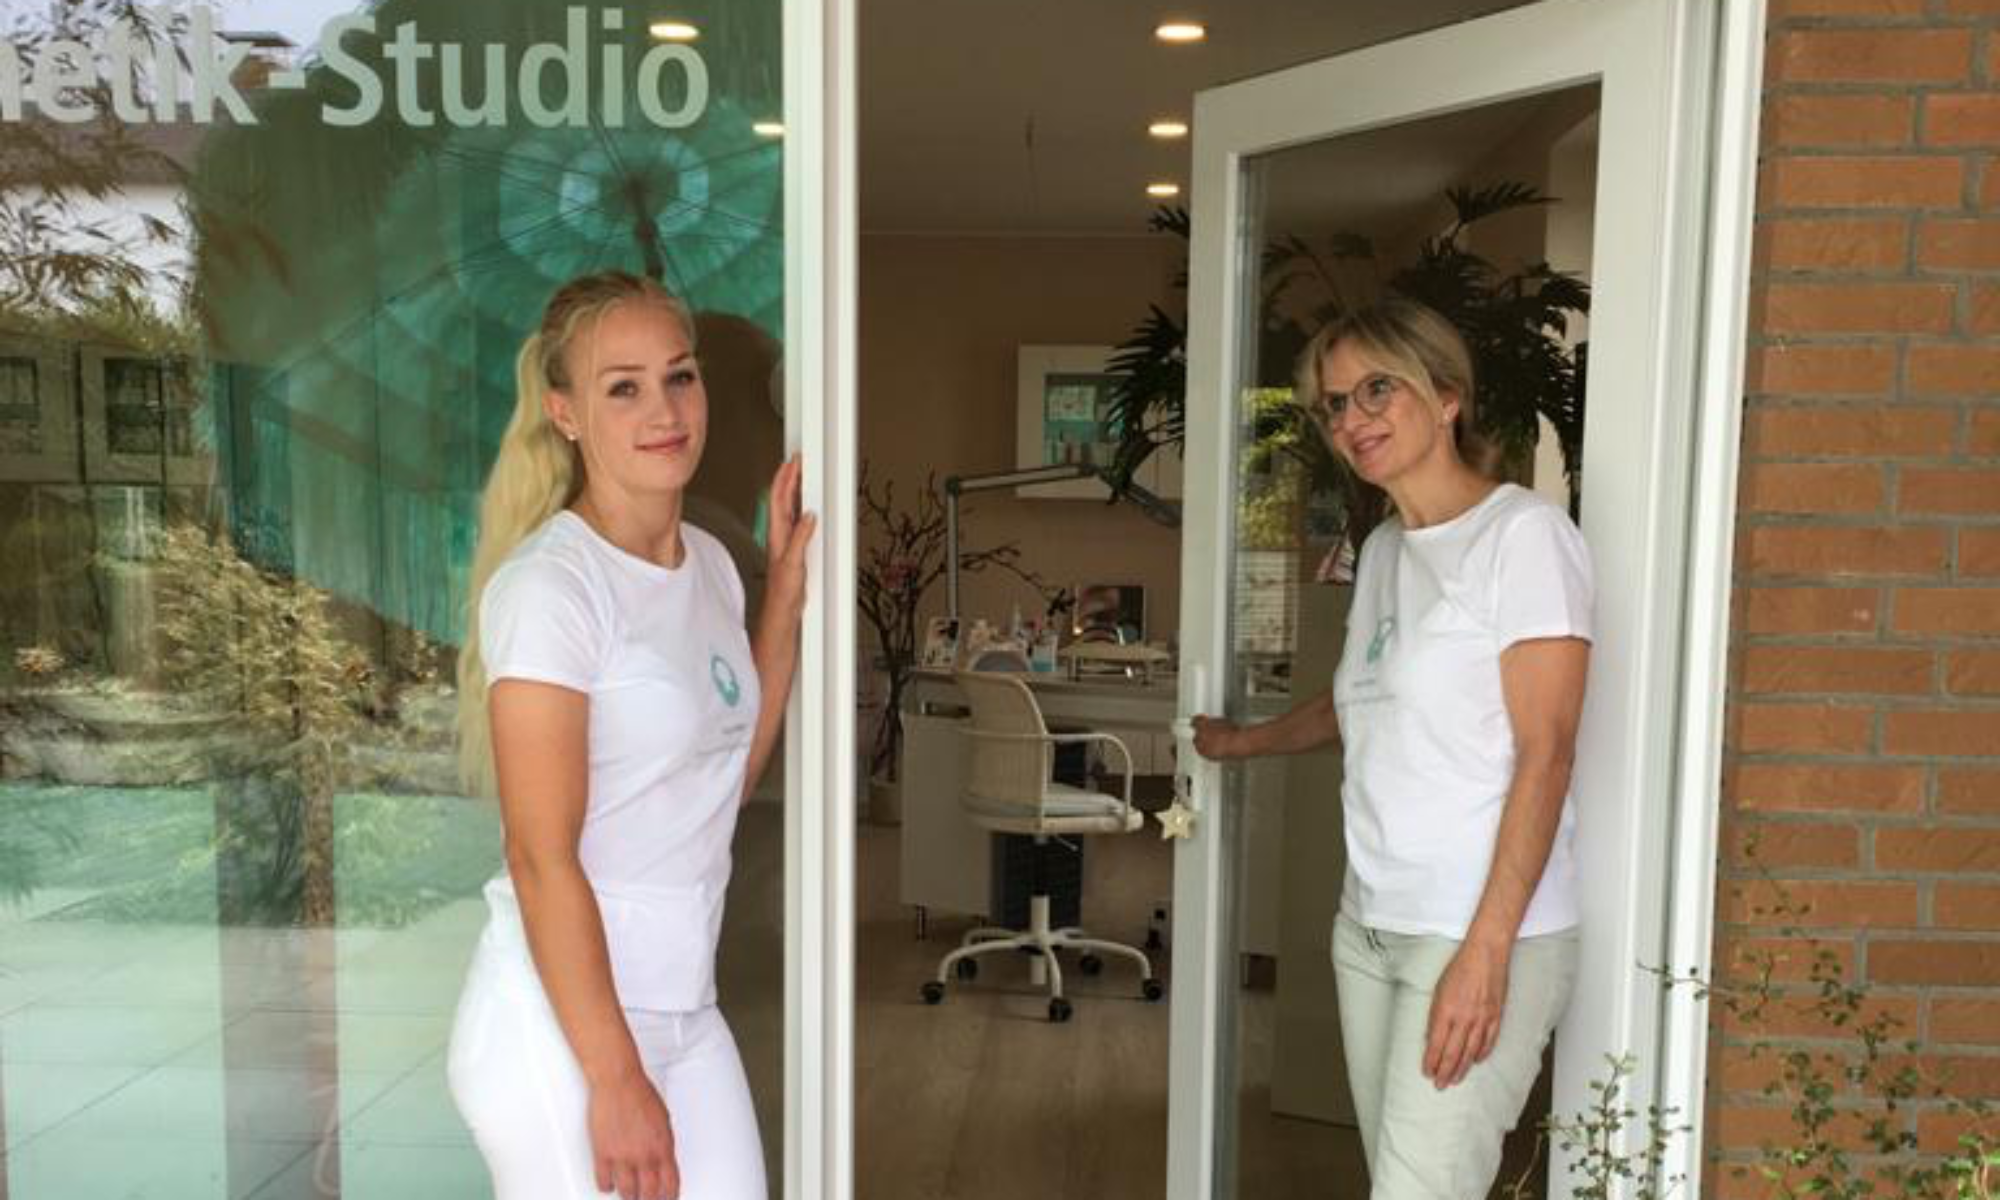 Fingernagelstudio-Muenster.de